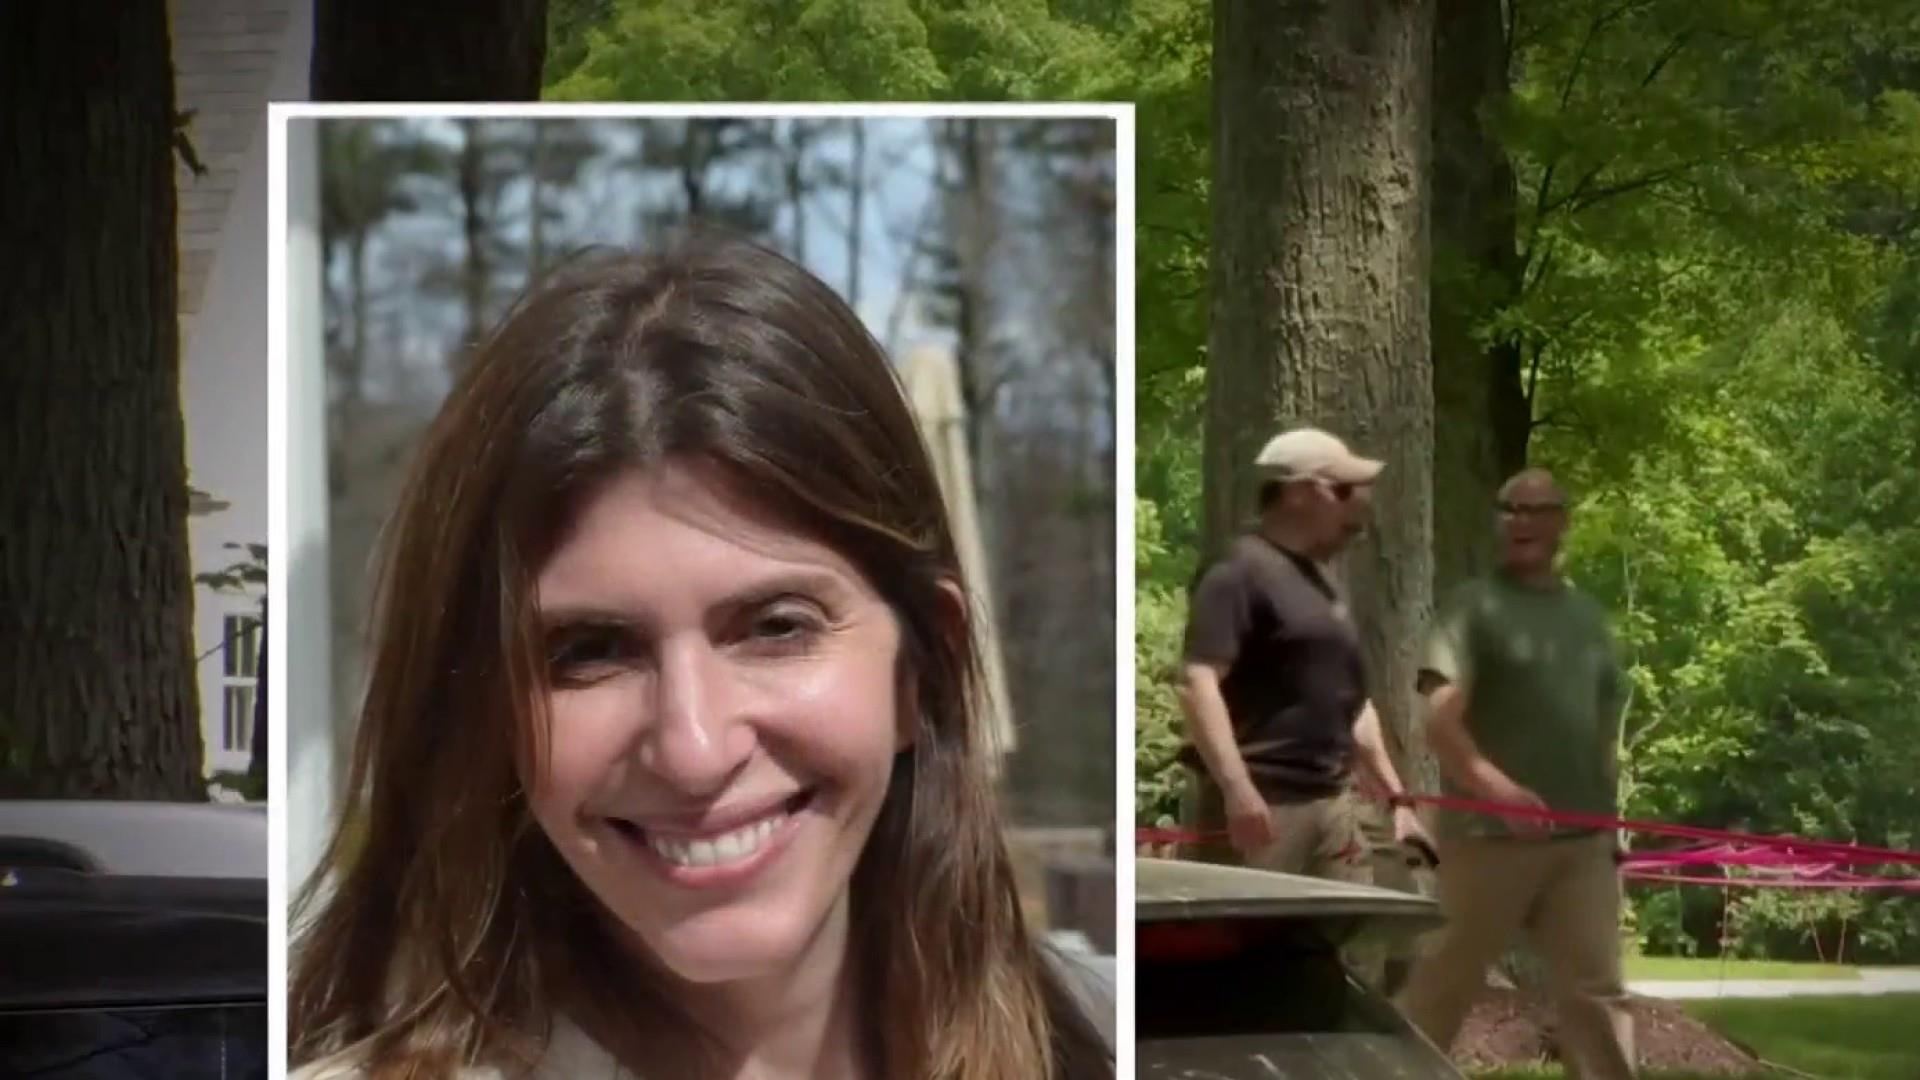 Estranged husband and his girlfriend arrested in case of missing Connecticut woman